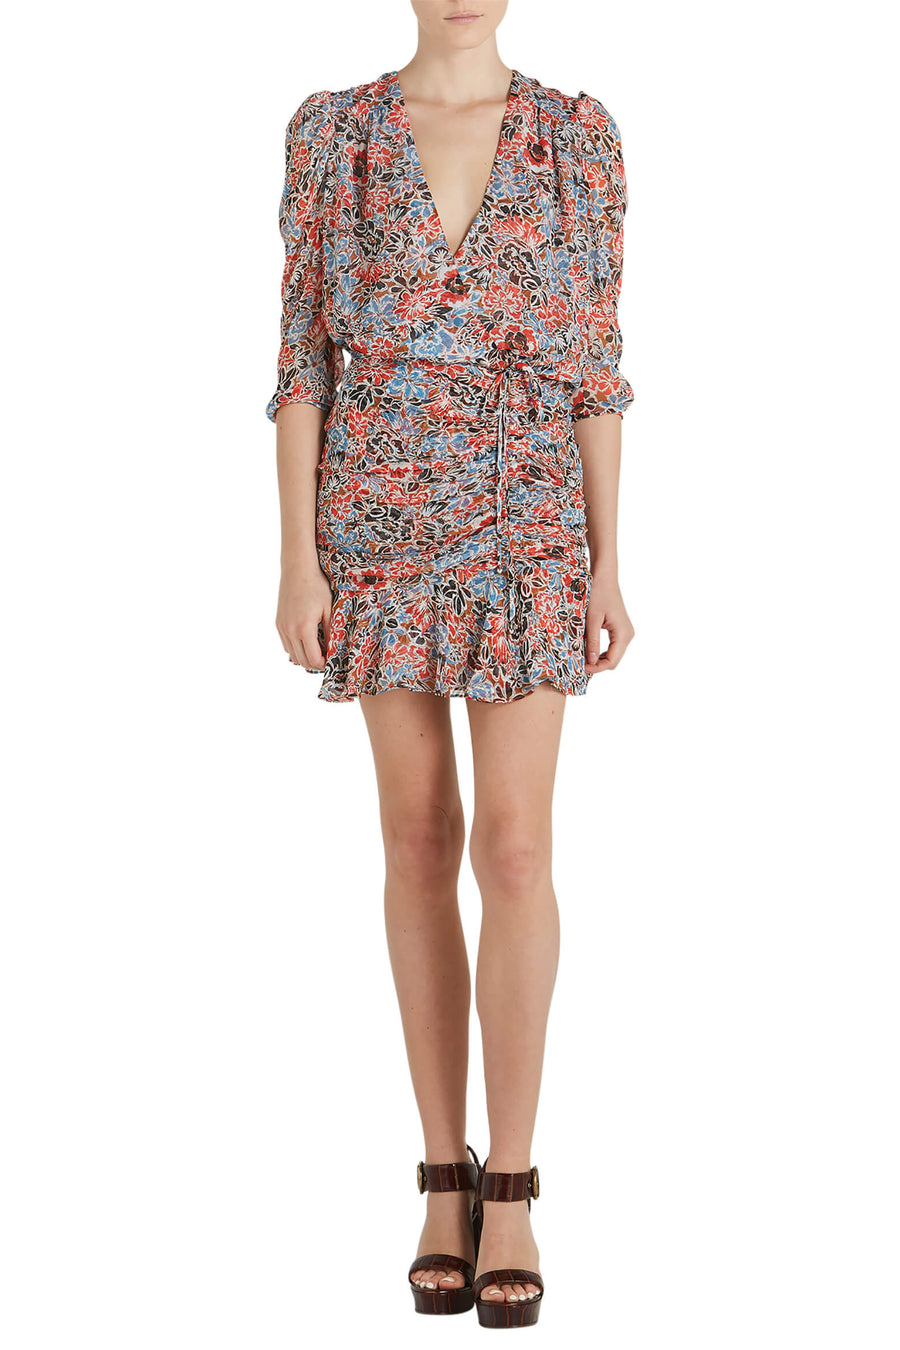 Veronica Beard Maggie Dress in Poppy Multi from The New Trend